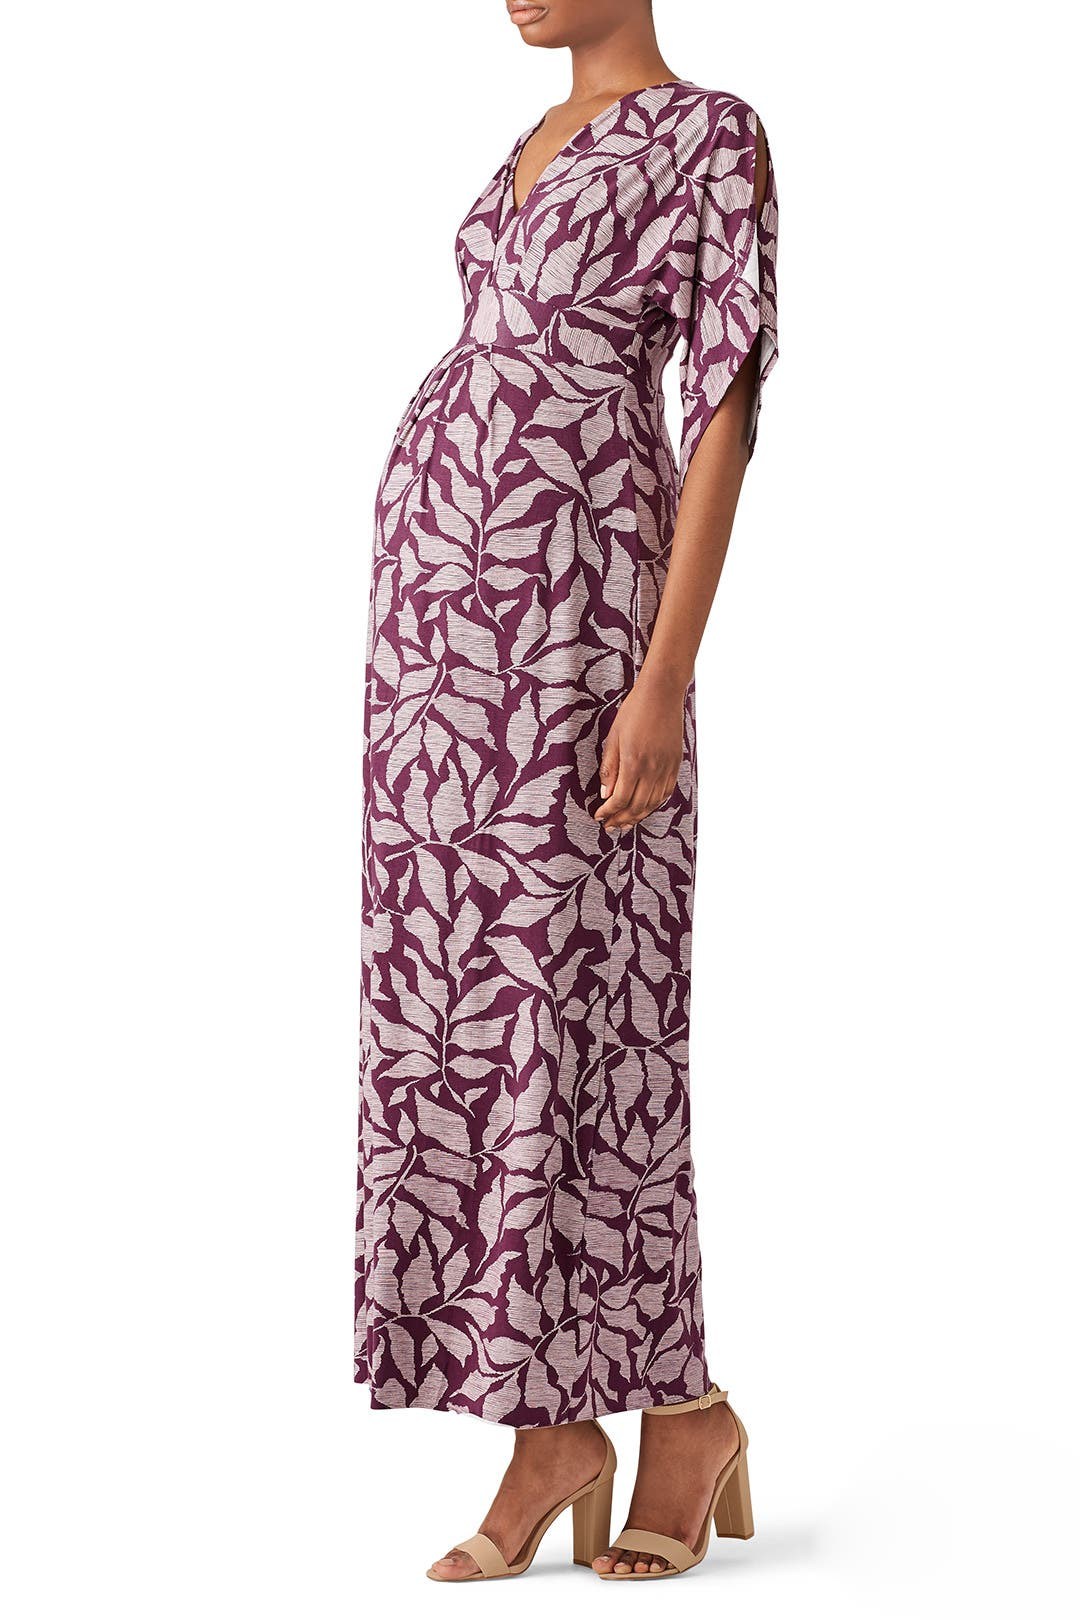 f02b39699ab0d Kimono Maternity Maxi by Ingrid & Isabel for $30 | Rent the Runway